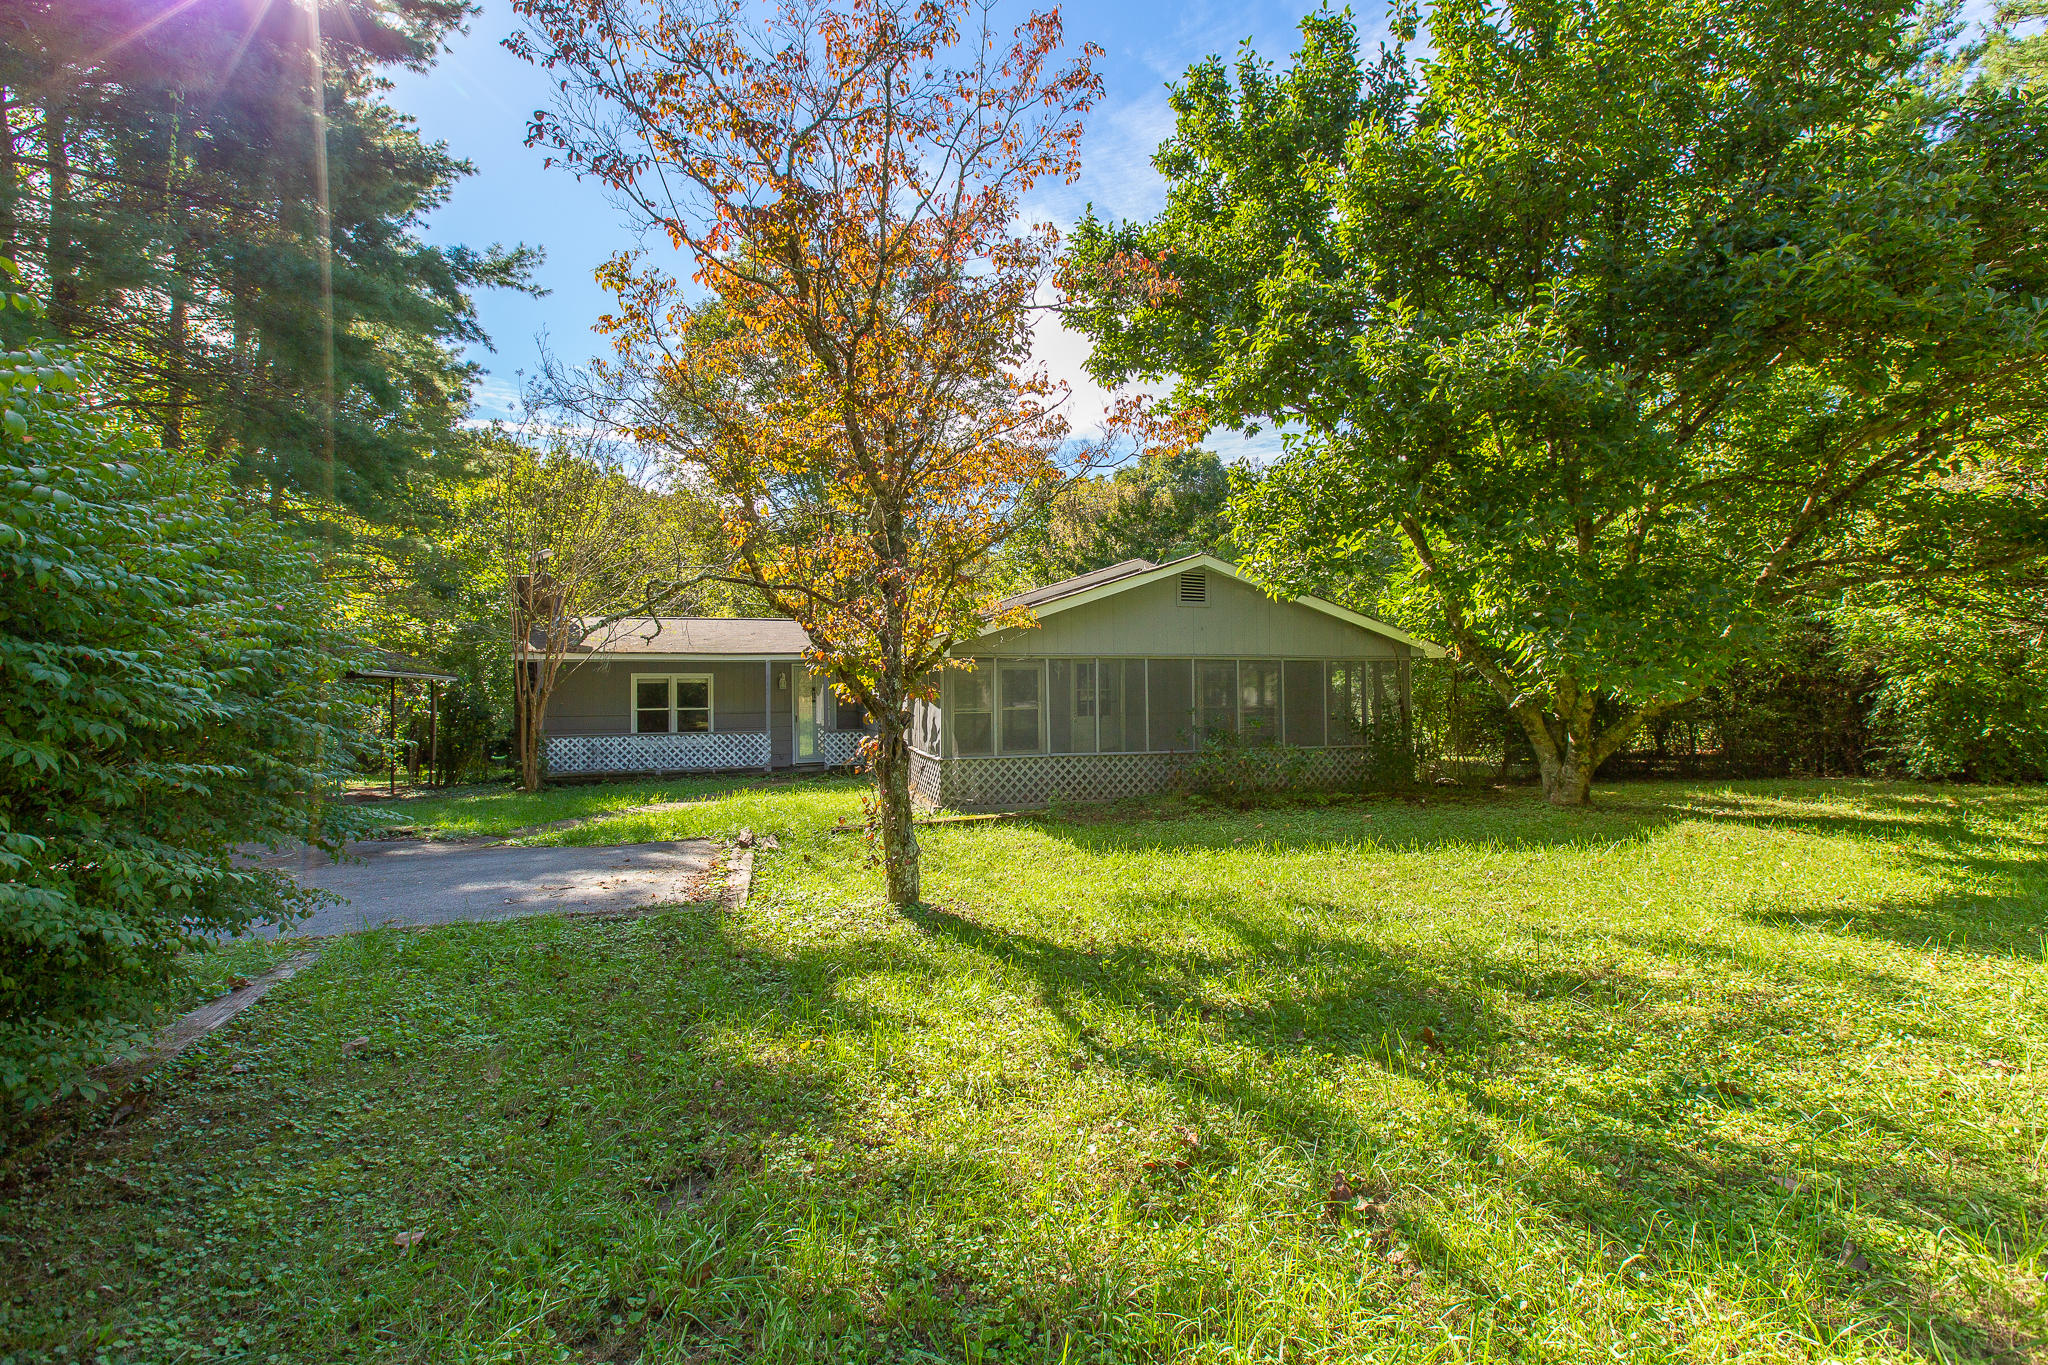 445 Timberlinks Dr, Signal Mountain, TN 37377